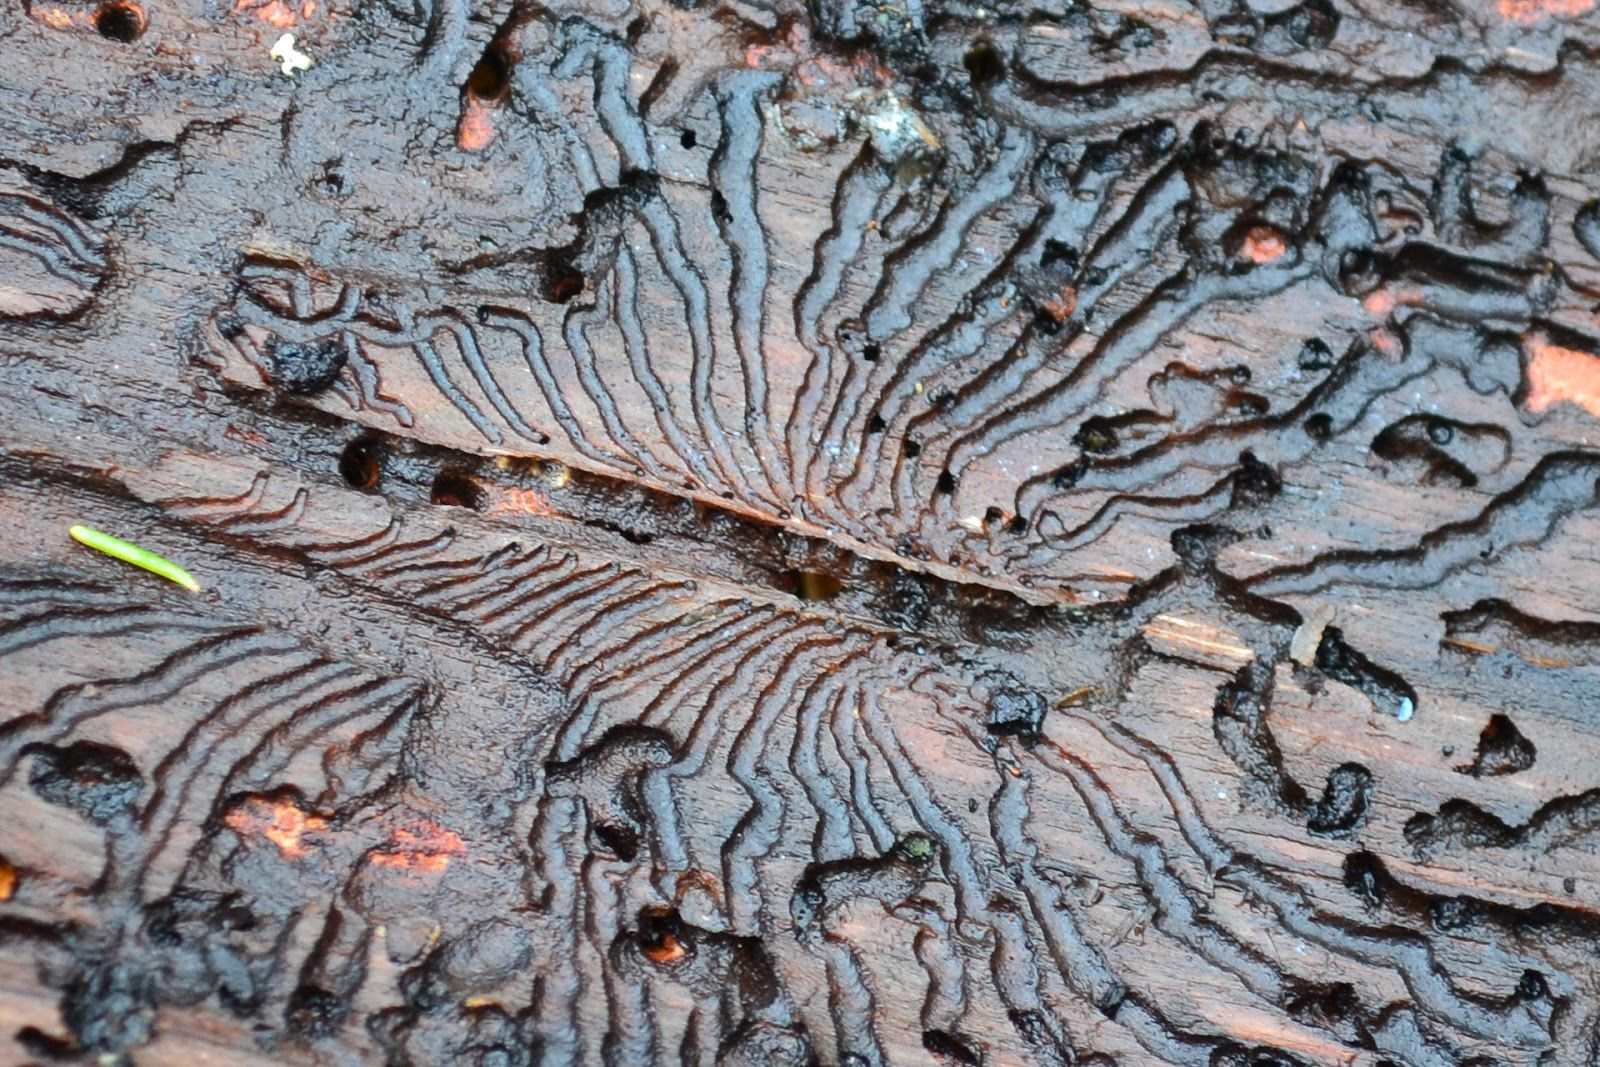 The larvae of Spruce Bark-Beetles make intricate patterns